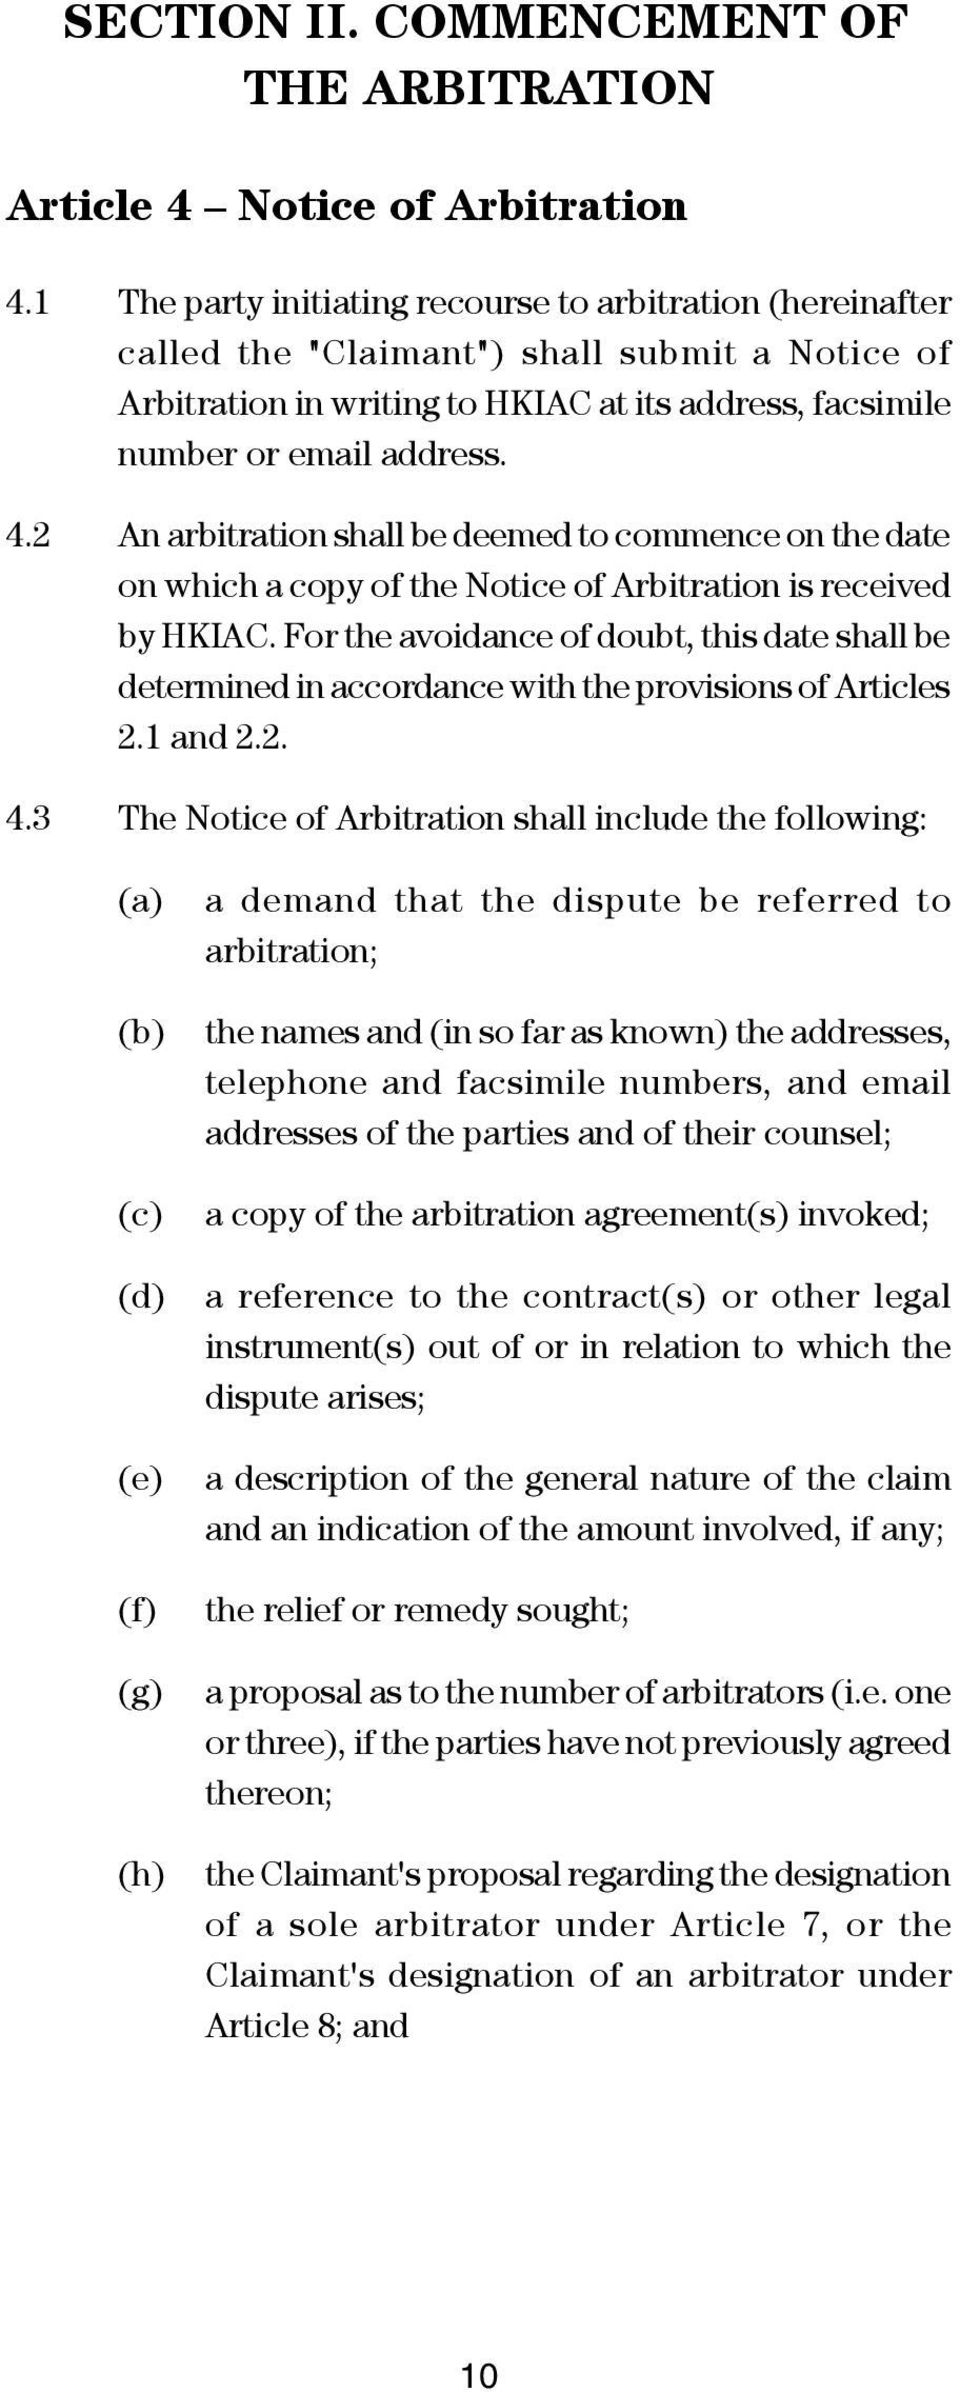 2 An arbitration shall be deemed to commence on the date on which a copy of the Notice of Arbitration is received by HKIAC.